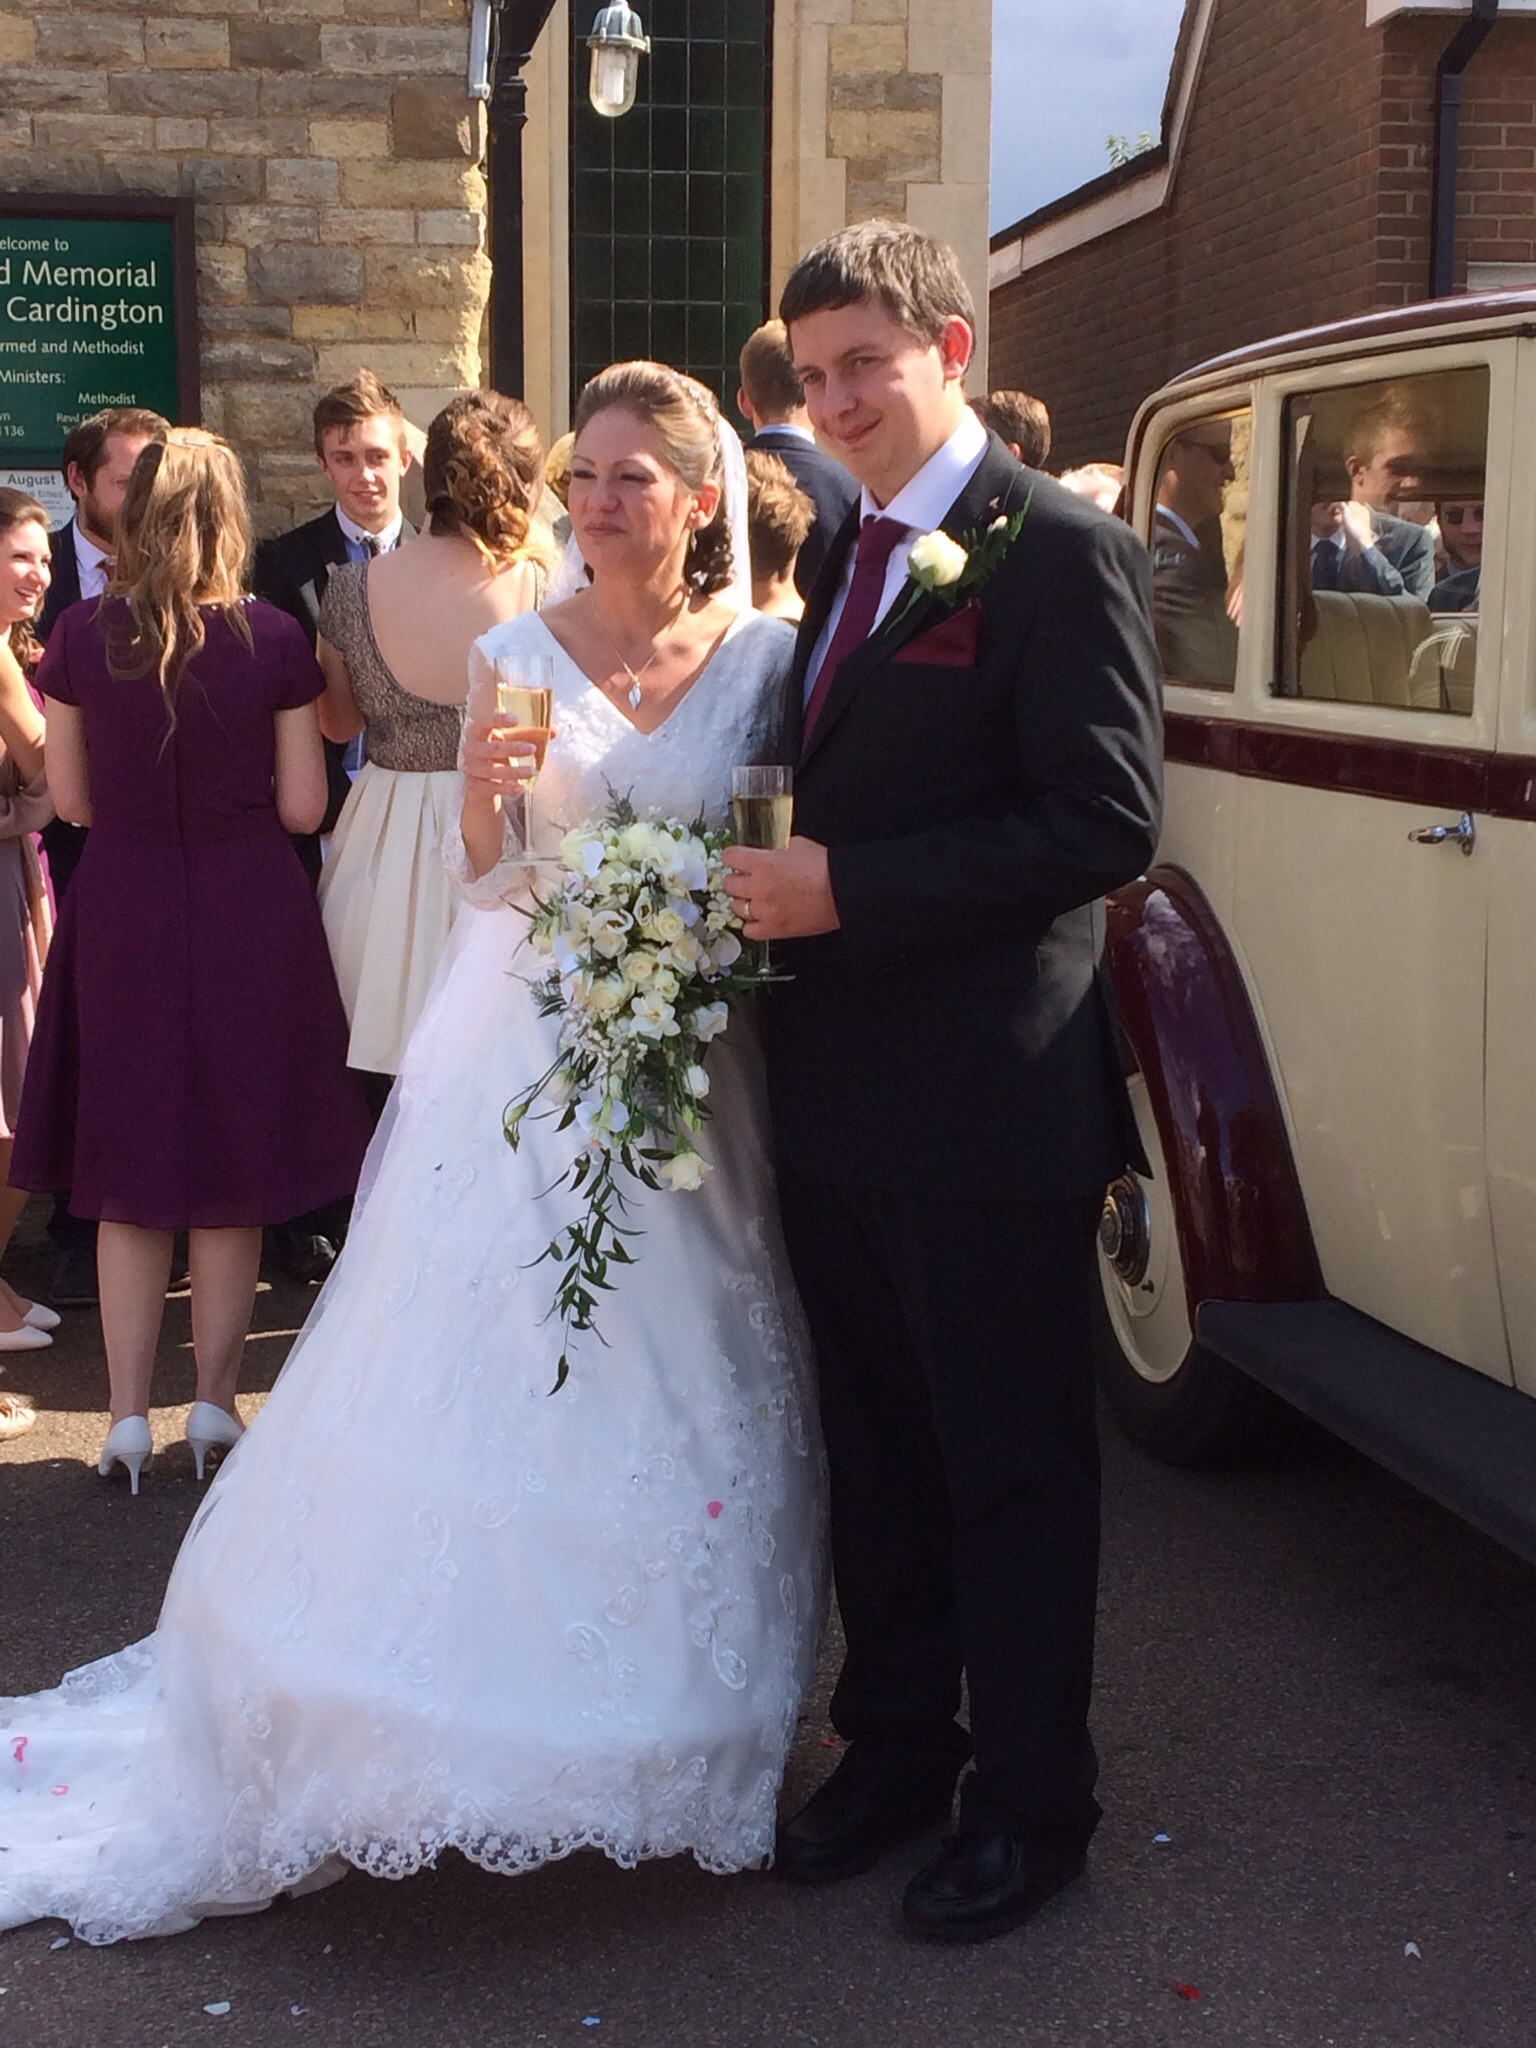 The Bride and Groom outside the church following Part Deux